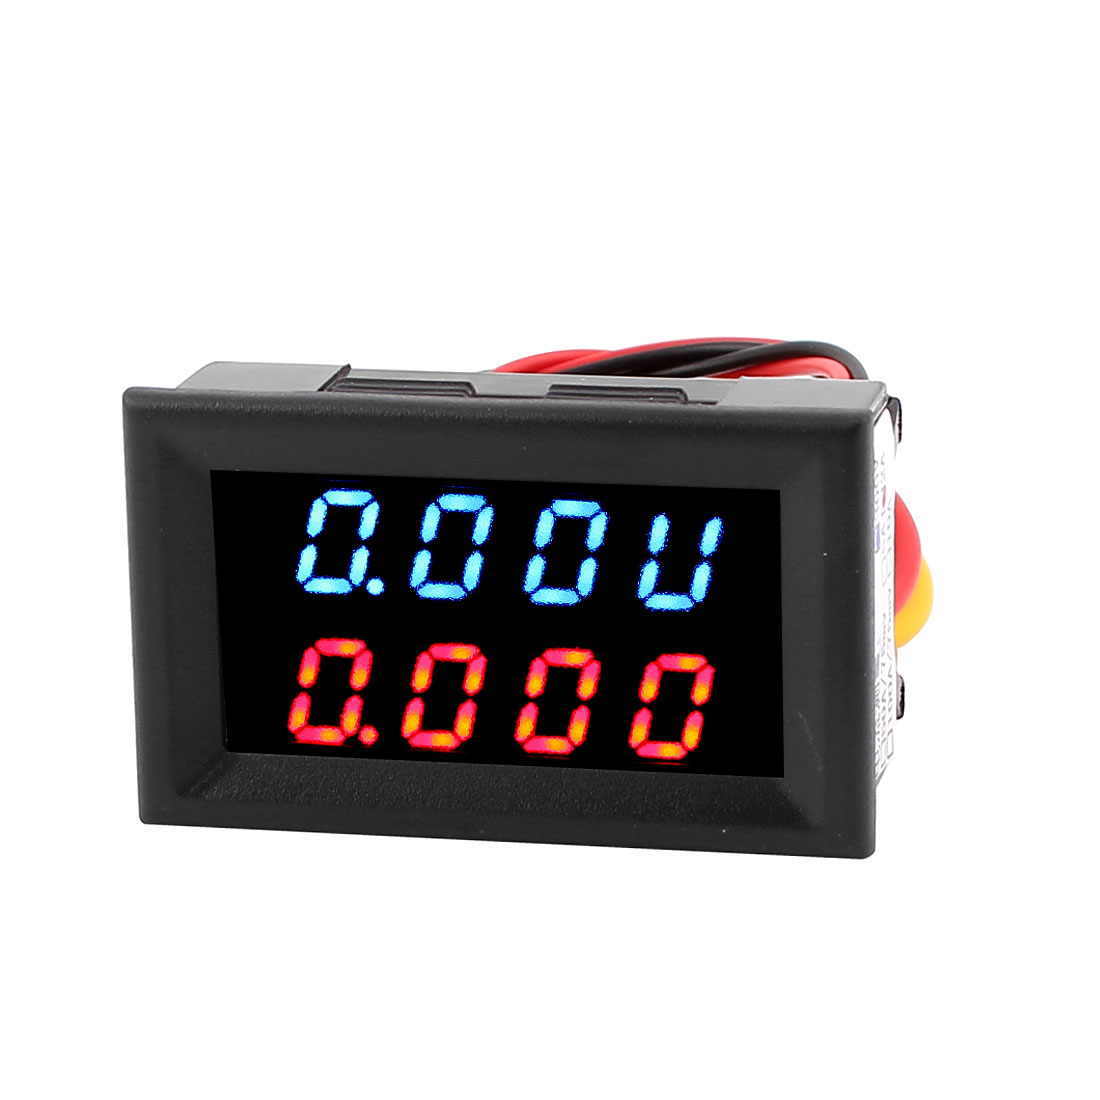 DC 0-300V 0-2A Dual LED Digital Power Battery Tester Voltmeter Ammeter